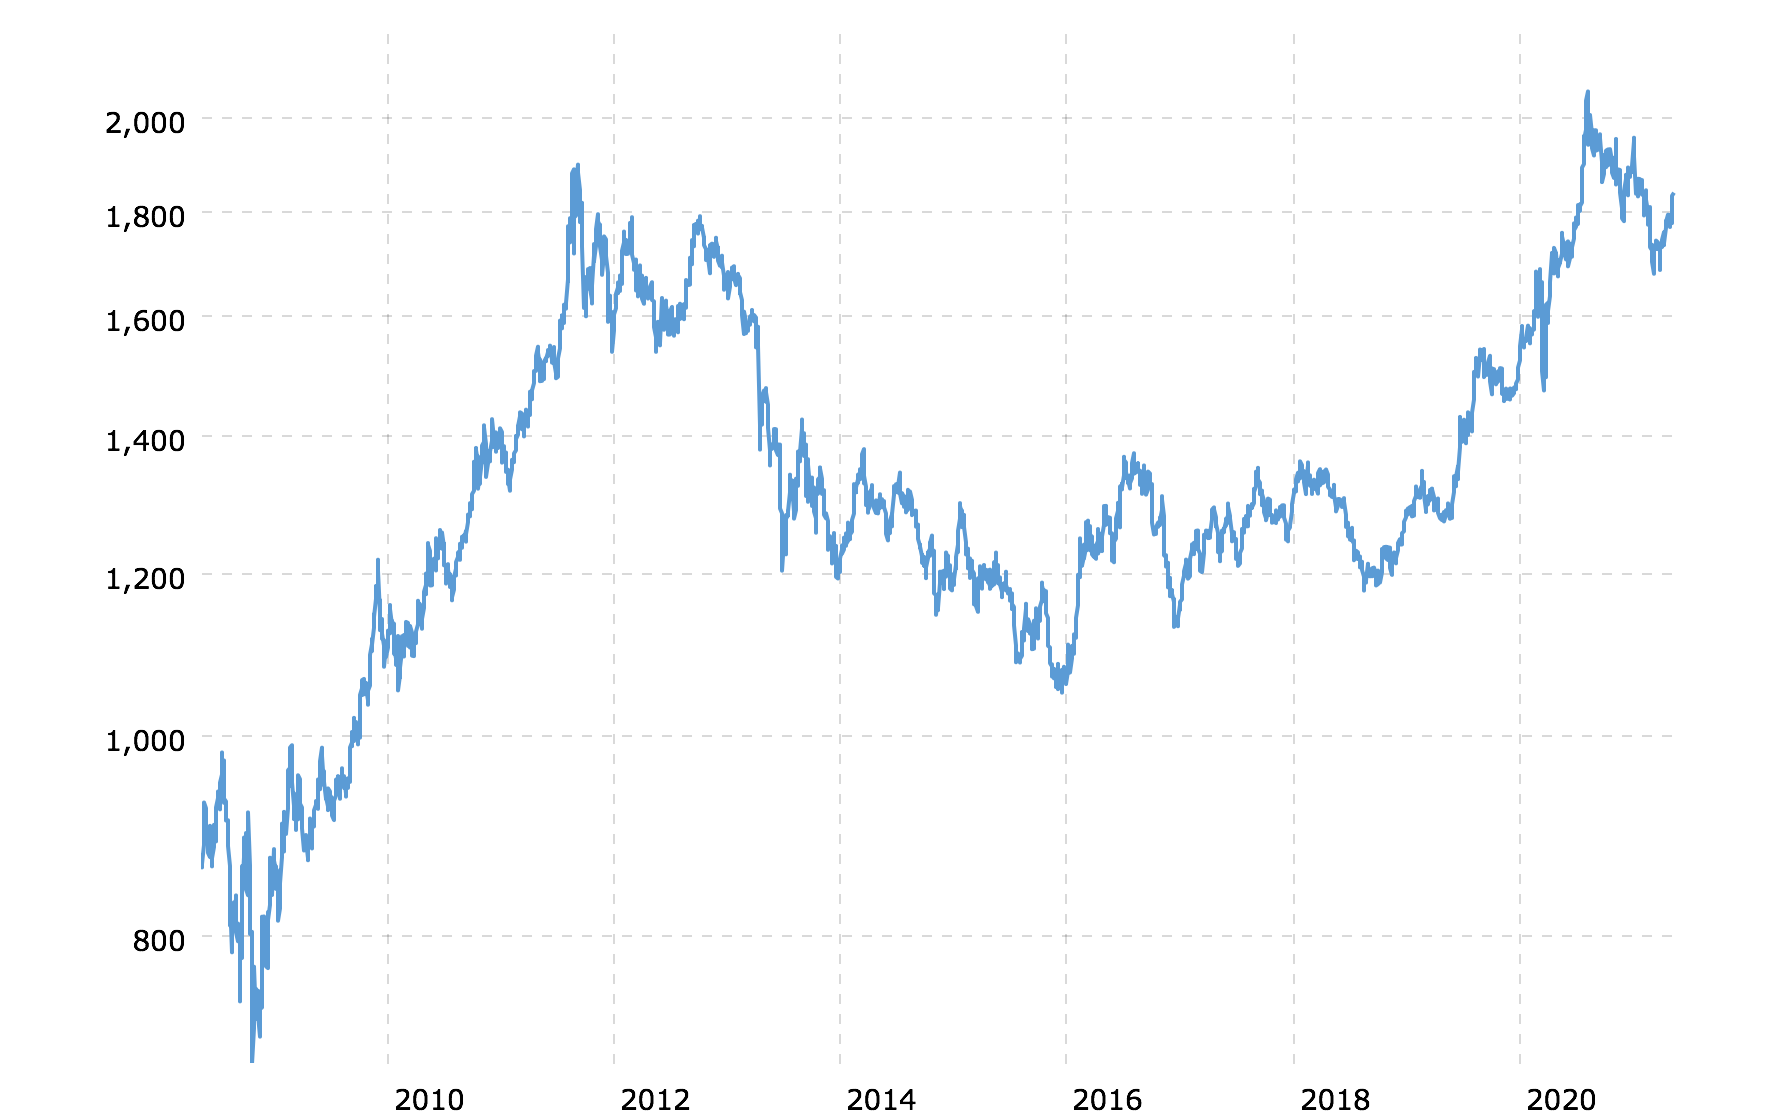 Price Per Ounce of Gold Over The Past 10 Years